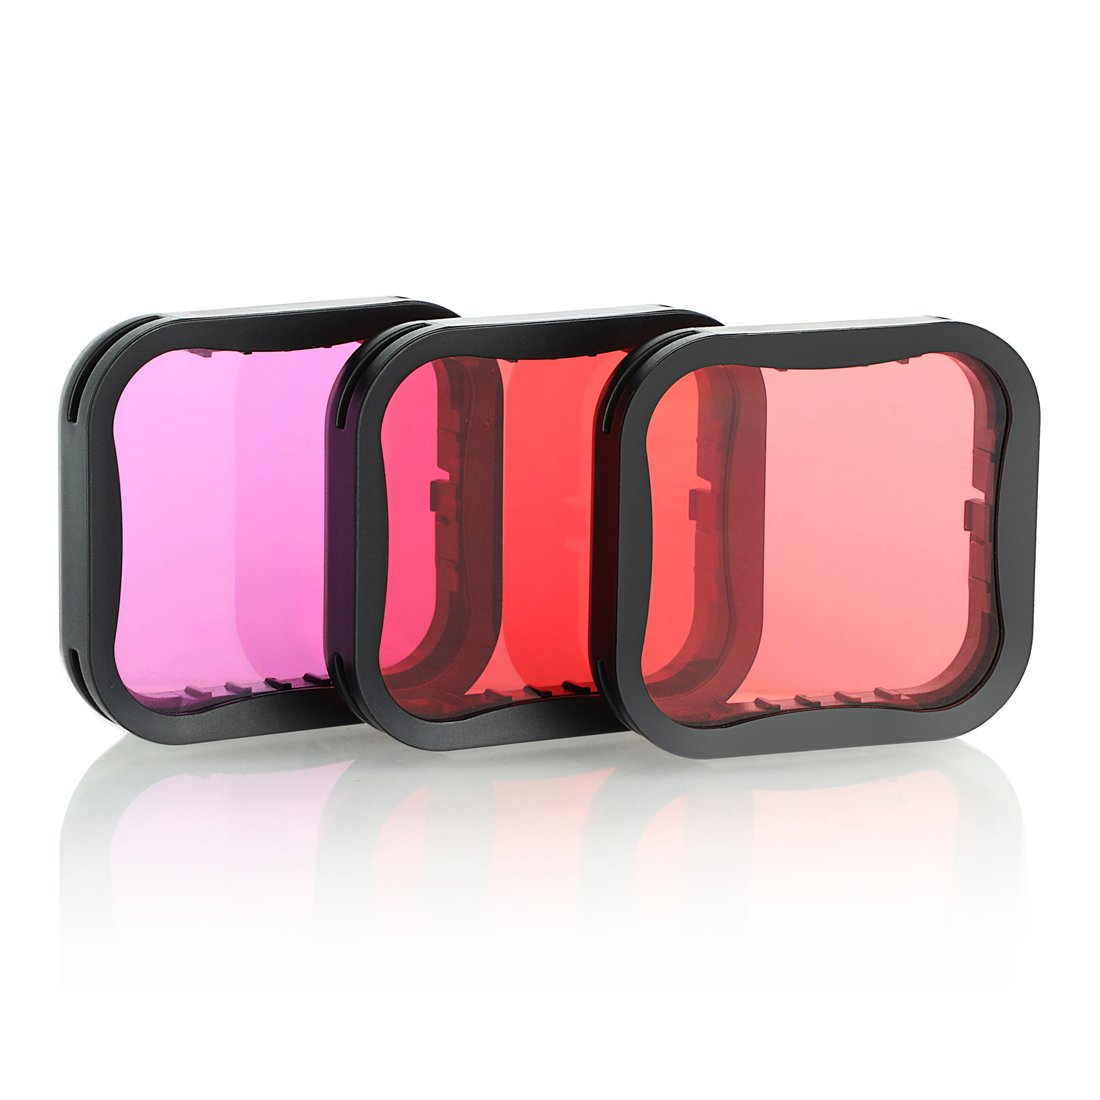 SOONSUN 3 Pack Dive Filter for GoPro Hero 6 / Hero 5 Super Suit Dive Housing - Red,Light Red and Magenta Filter - Enhances Colors for Various Underwater Video and Photography Conditions